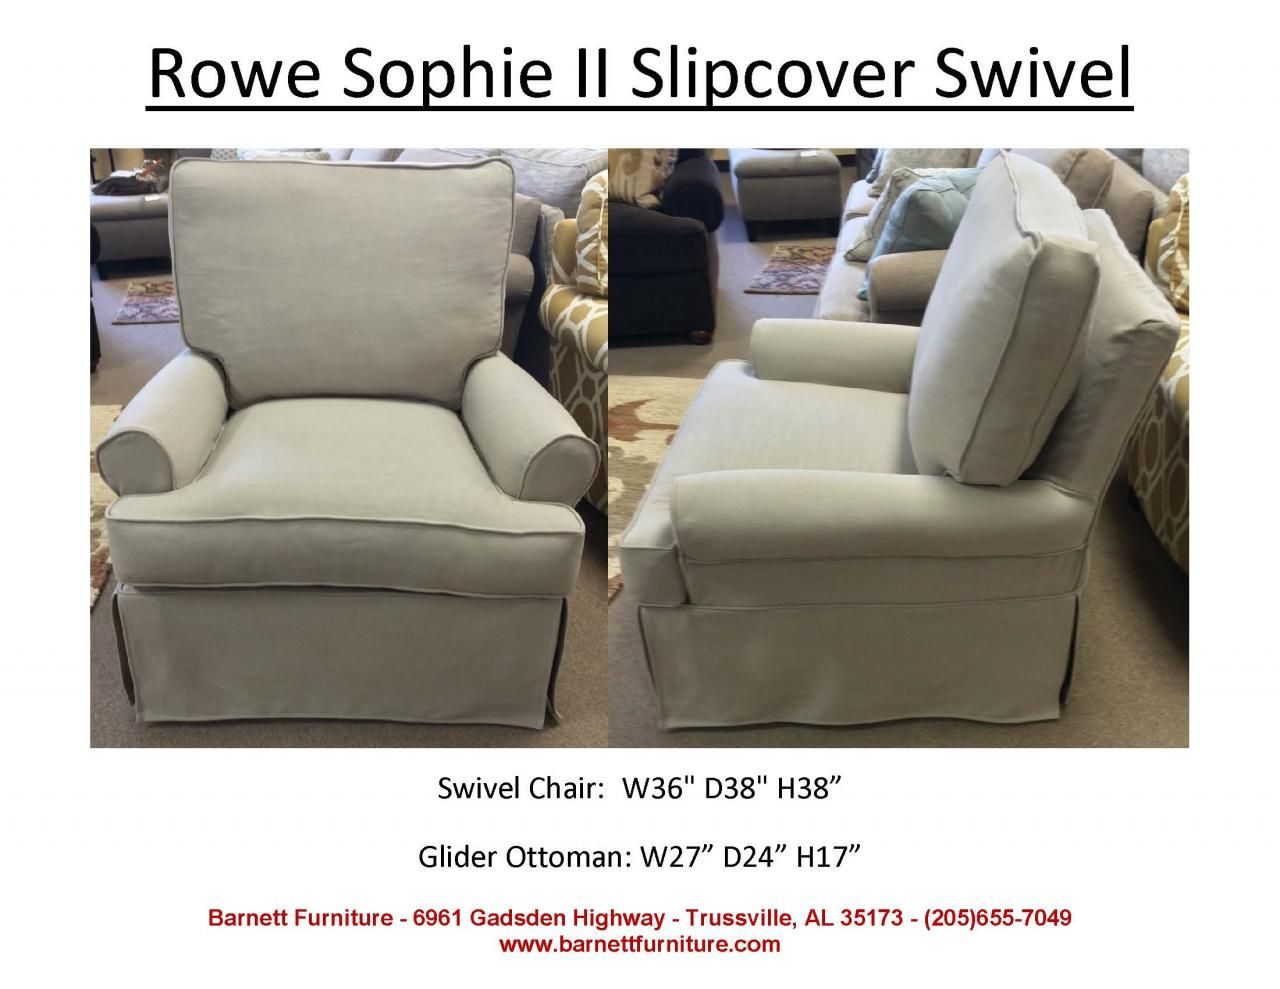 Rowe Nantucket Sofa Slipcover Replacement Modern Leather Sleeper Slipcovers Easton By